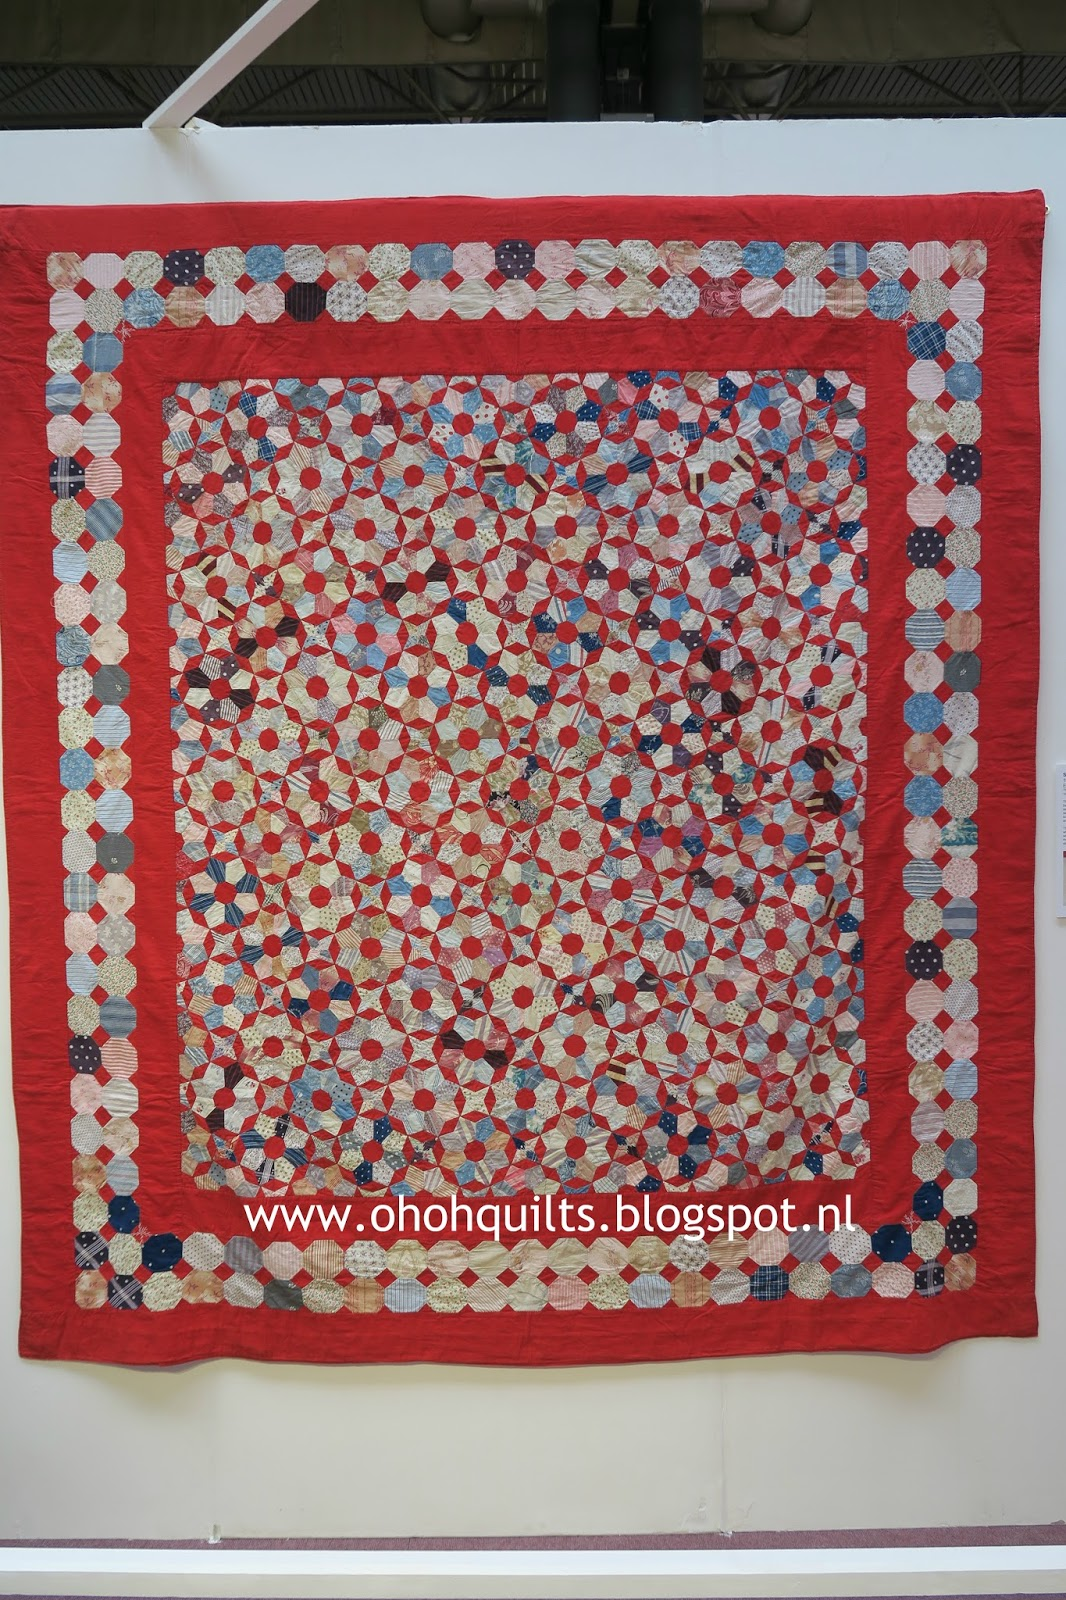 Oh oh quilts festival of quilts ii for Festival of quilts birmingham 2016